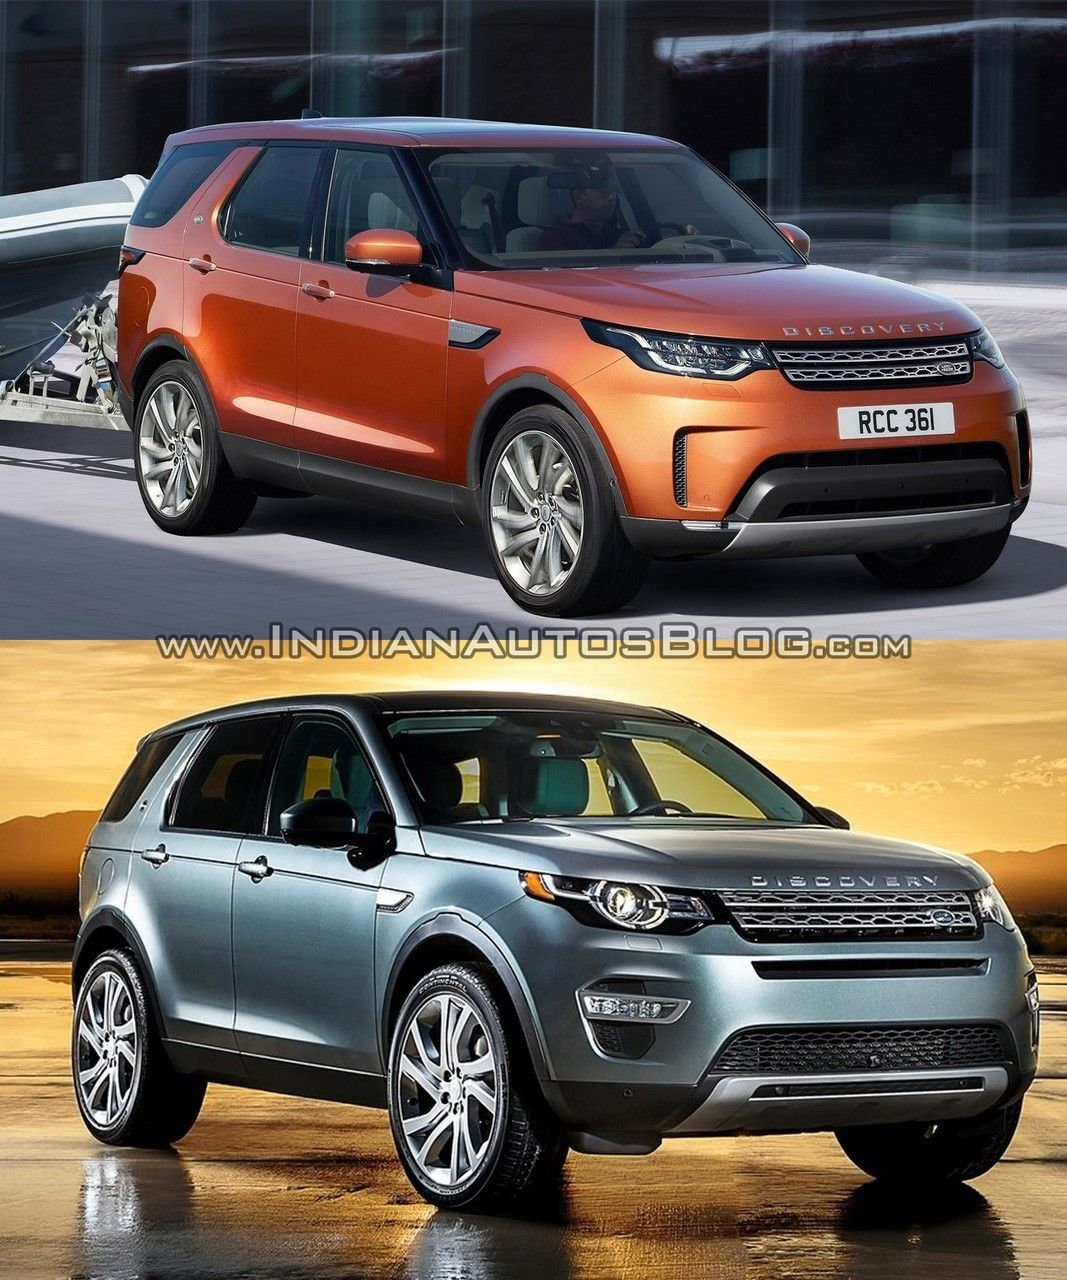 2017 Land Rover Discovery Vs Discovery Sport In Images Land Rover Land Rover Discovery Land Rover Discovery Sport